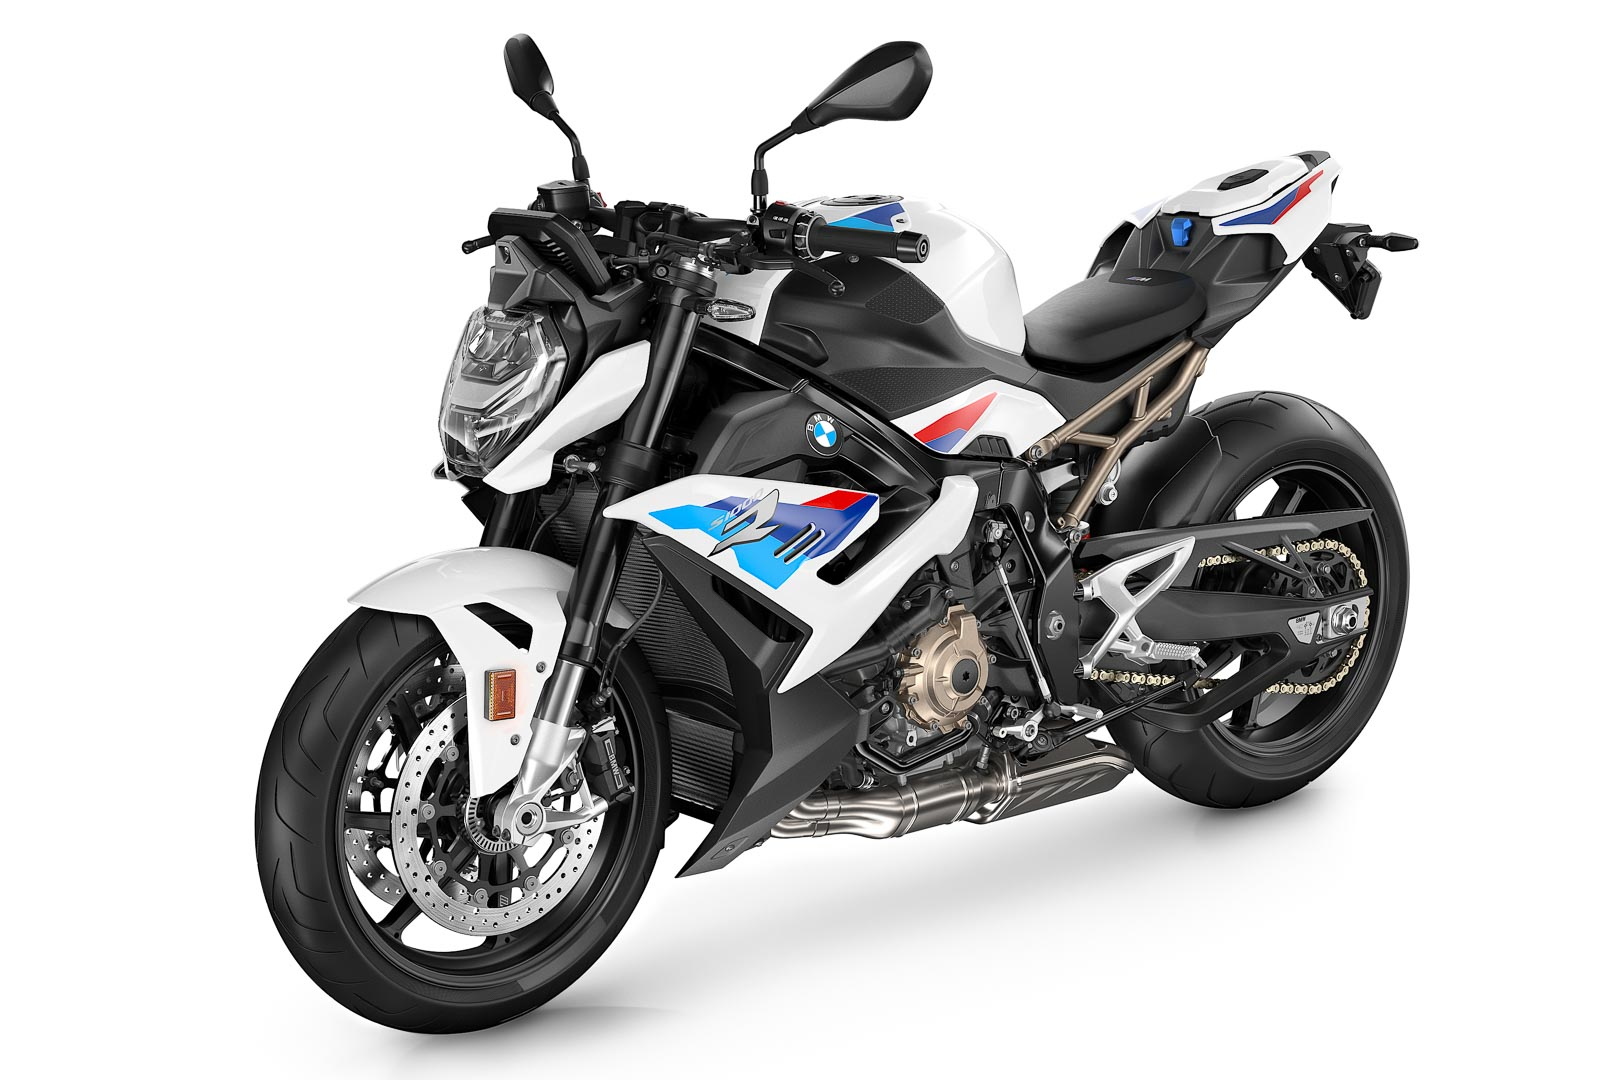 2021 BMW S 1000 R First Look: For Sale